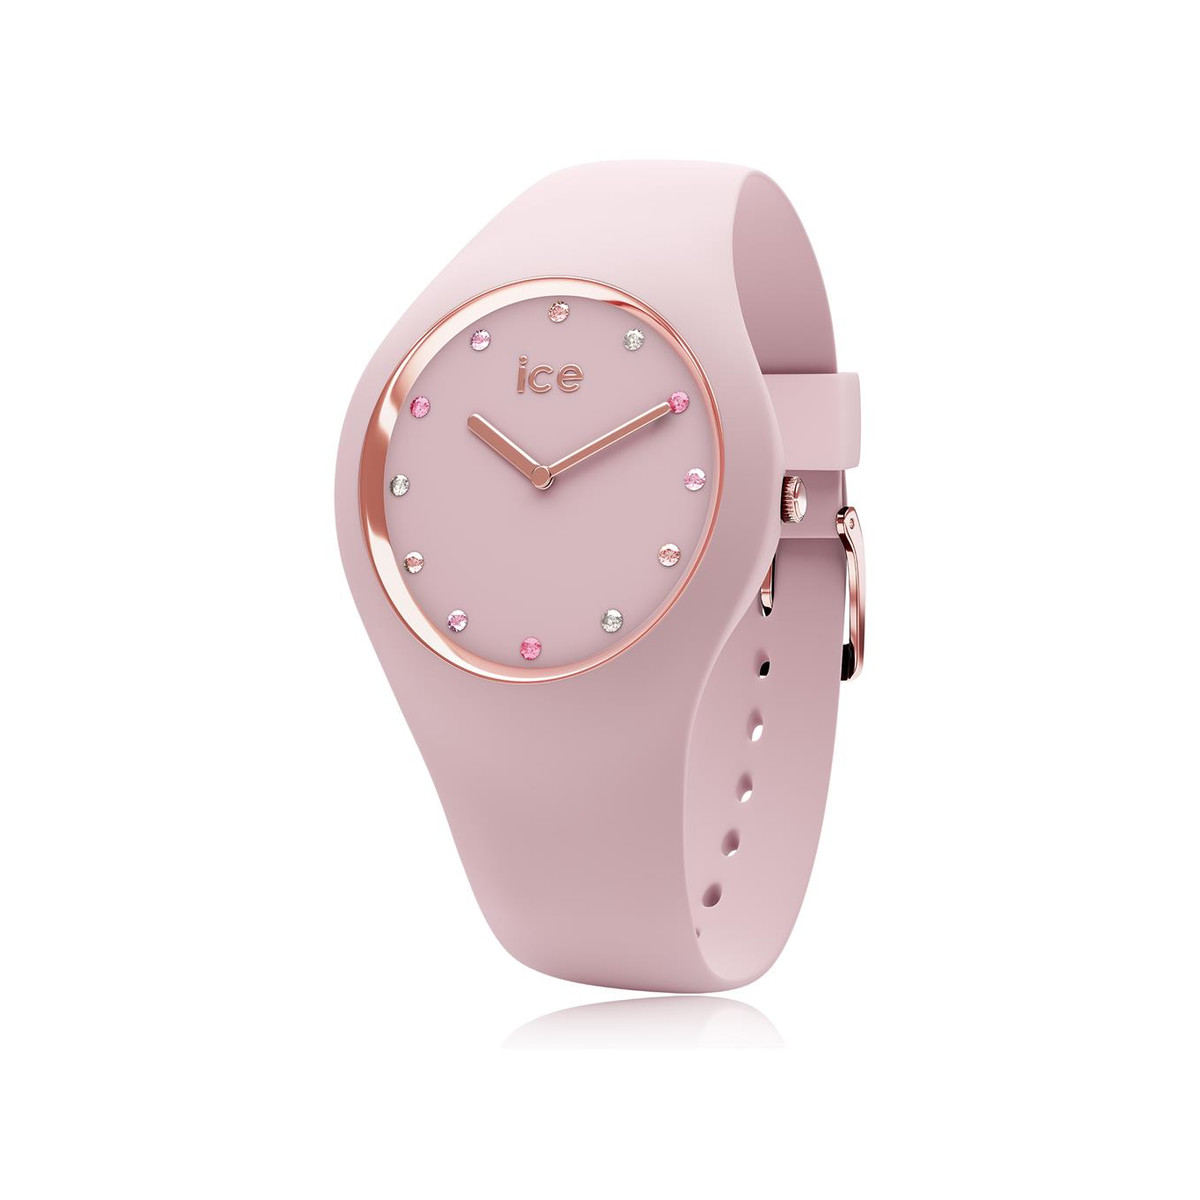 Montre Ice Watch femme silicone rose small 34 mm